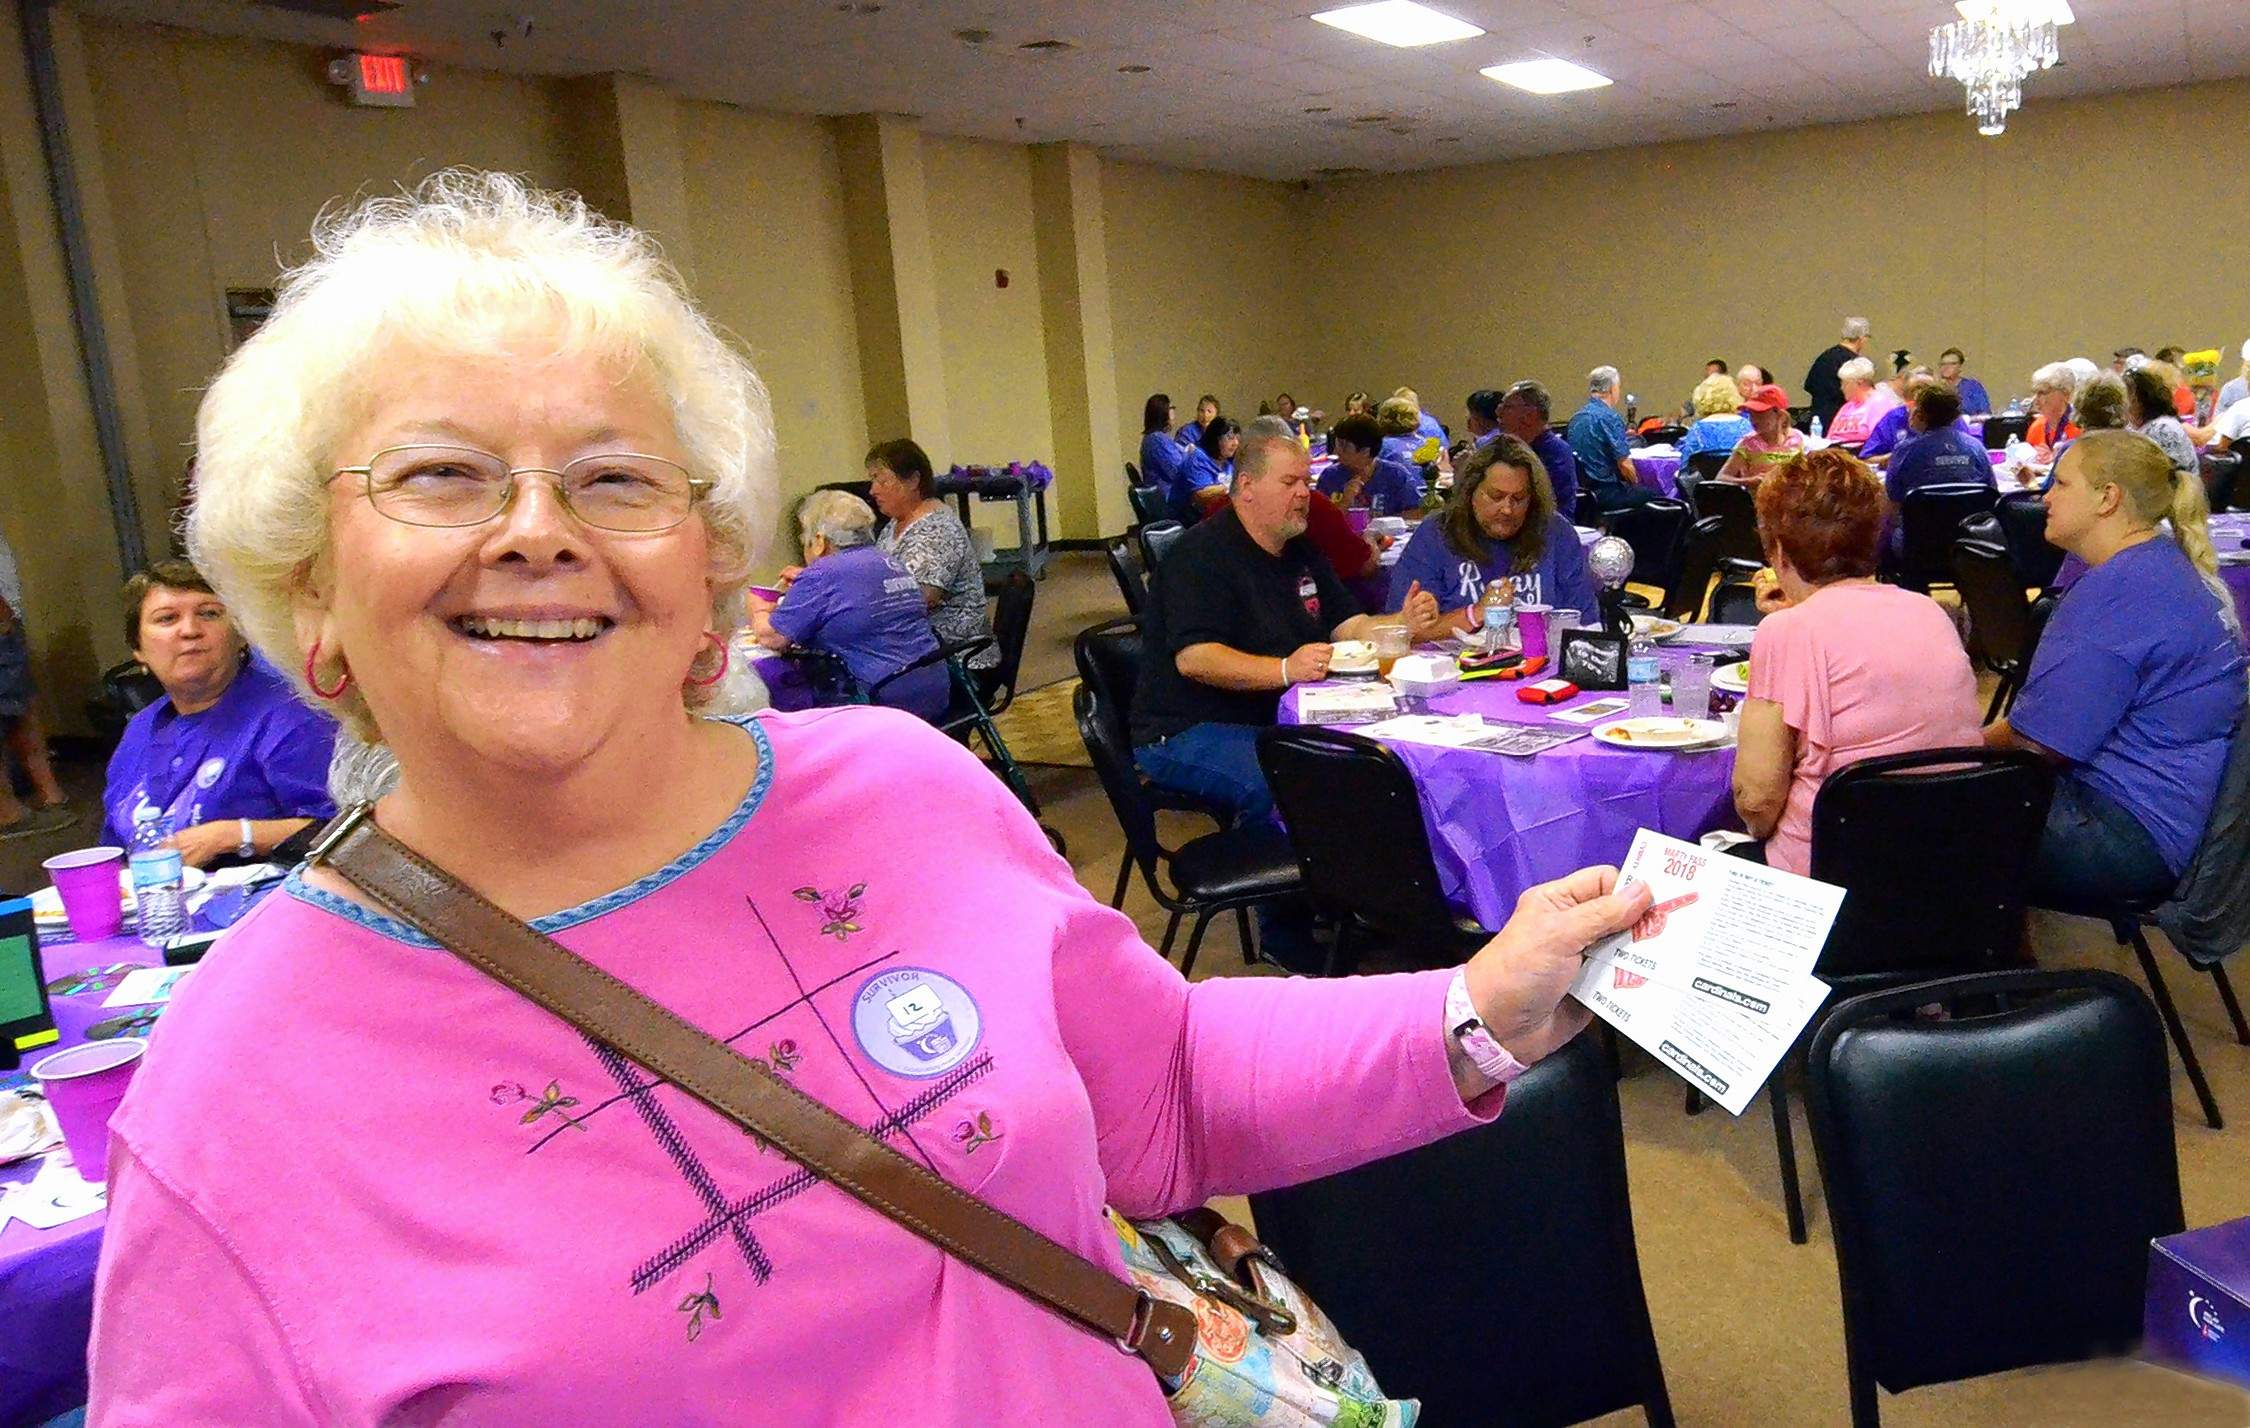 Mary Beth Livesay of Marion was among the cancer survivors who enjoyed the Survivors Reception at The Pavilion of the City of Marion Saturday just before the Relay For Life festivities to raise money for the American Cancer Society. Here, she shows off the pair of tickets she won to a St. Louis Cardinals baseball game at Busch Stadium.